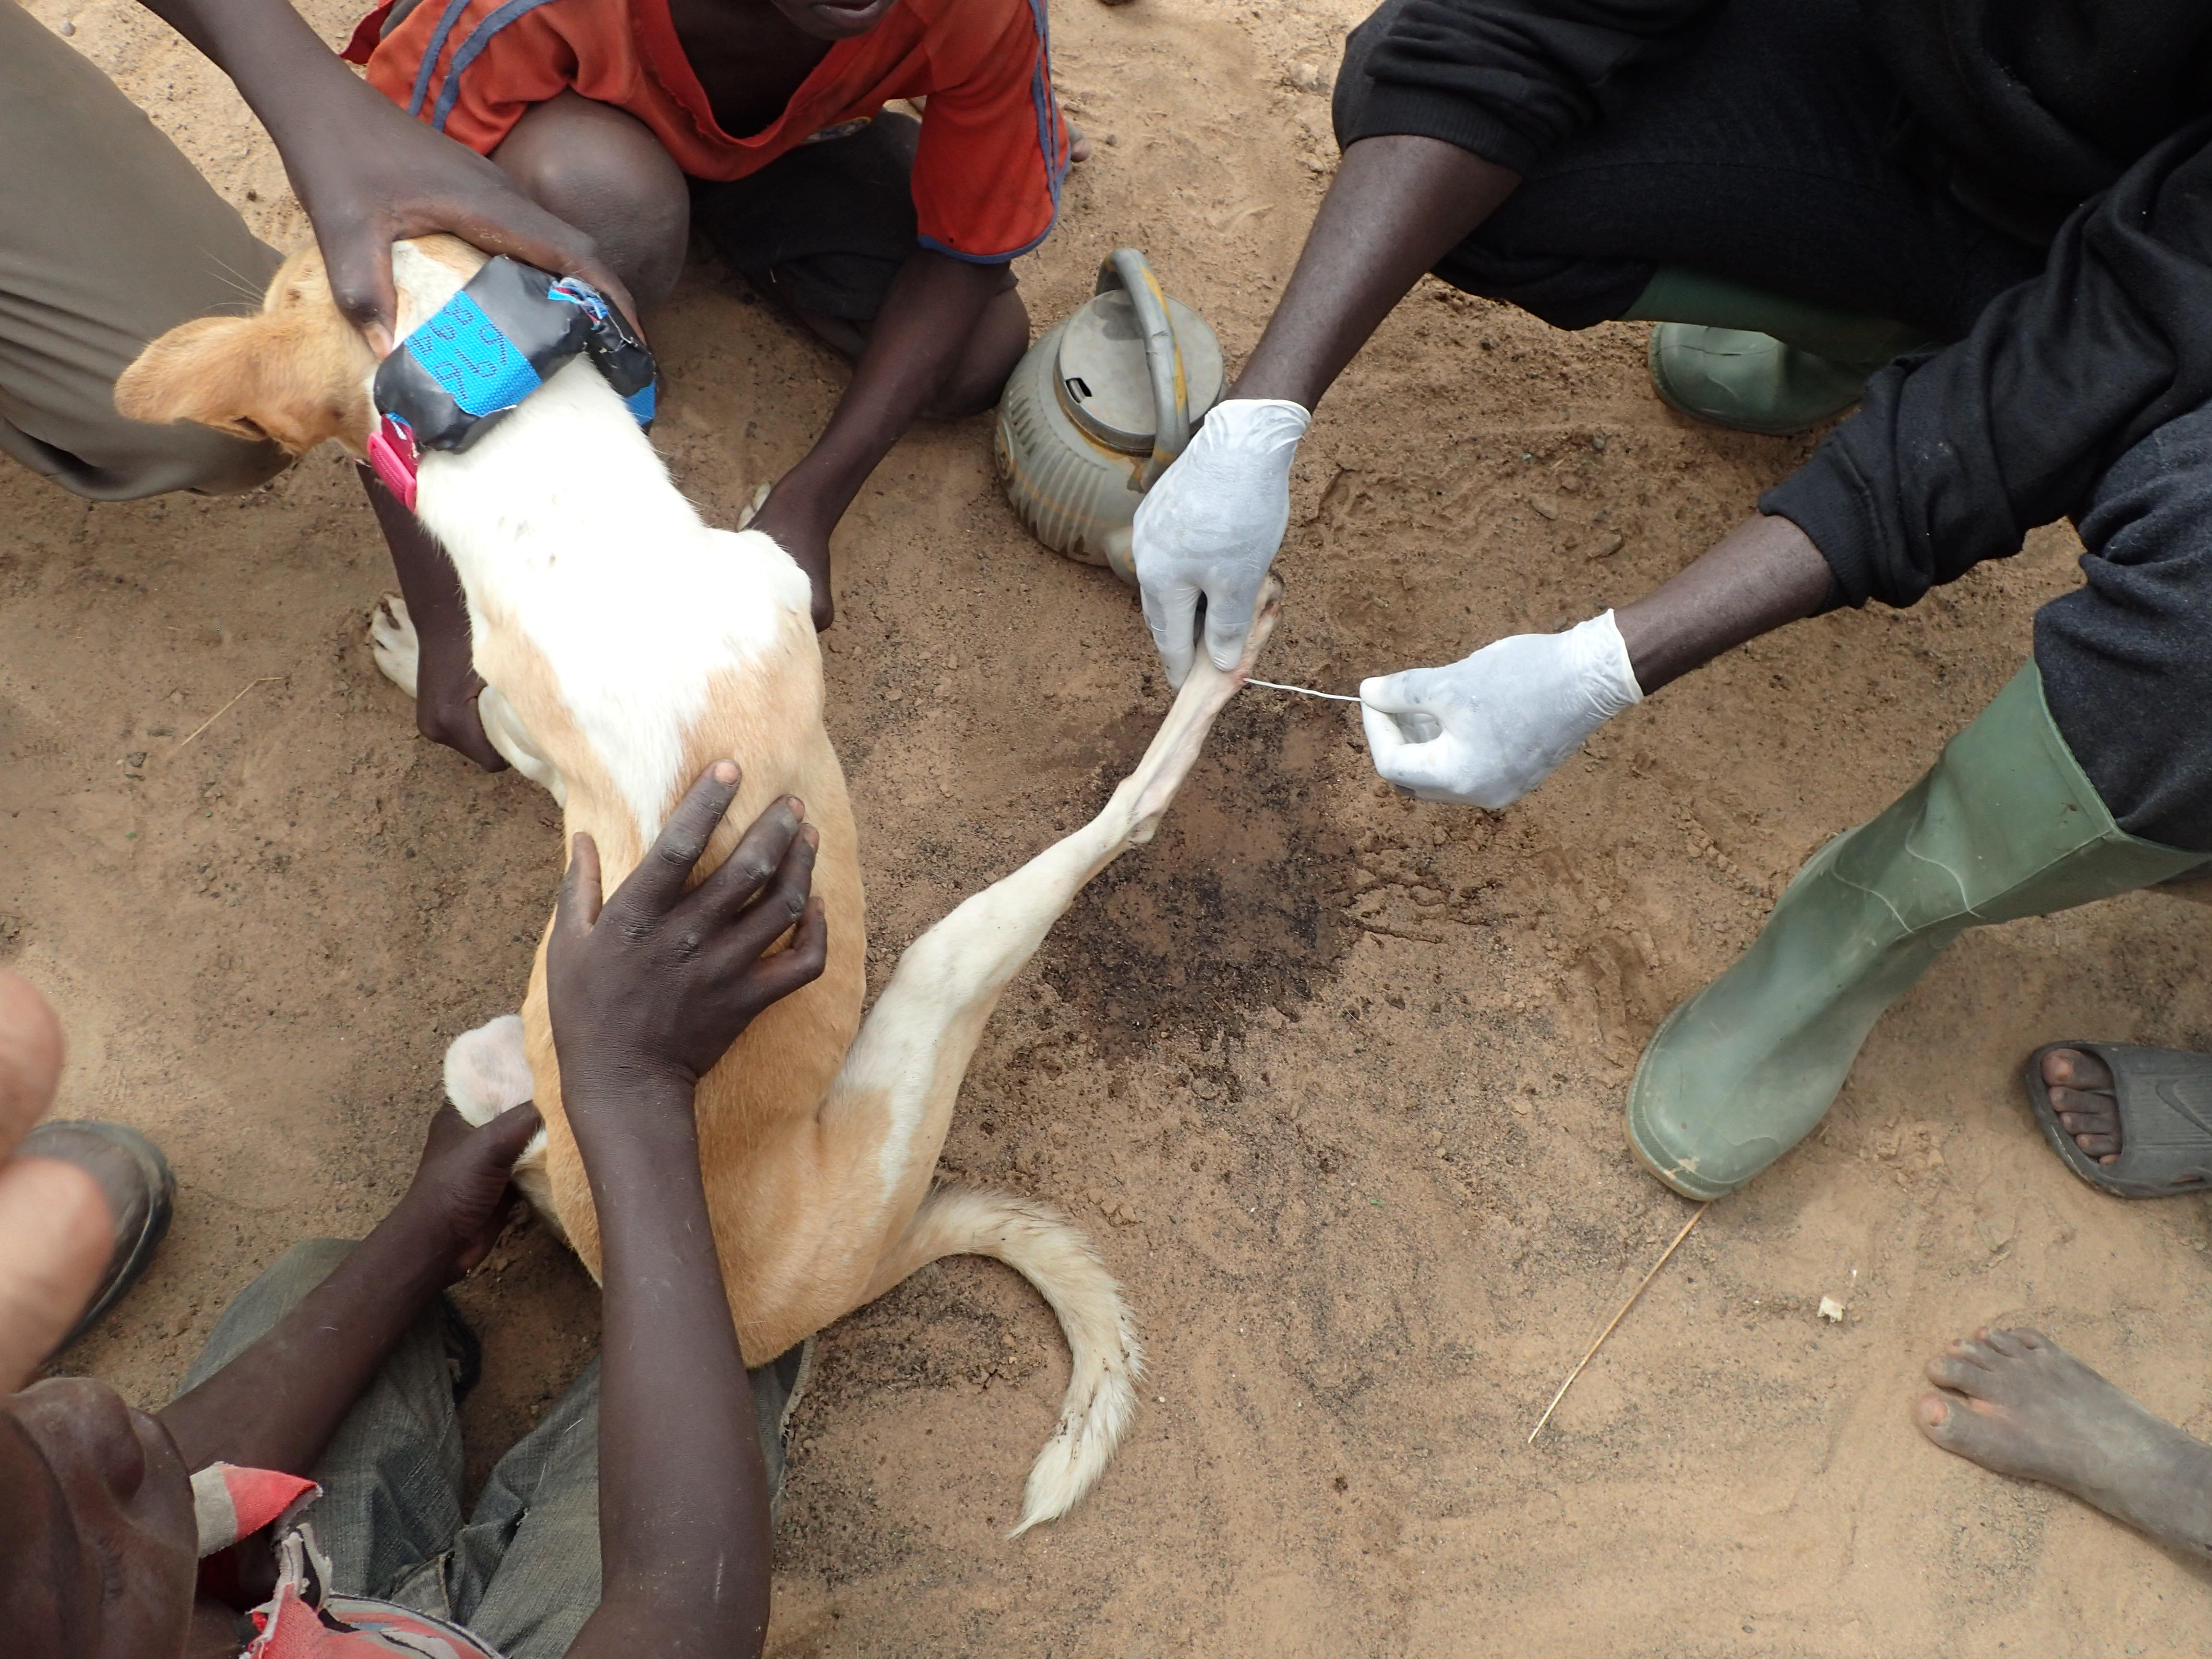 Guinea worm removal from a dog's leg - Photo: Jared Wilson-Aggarwal